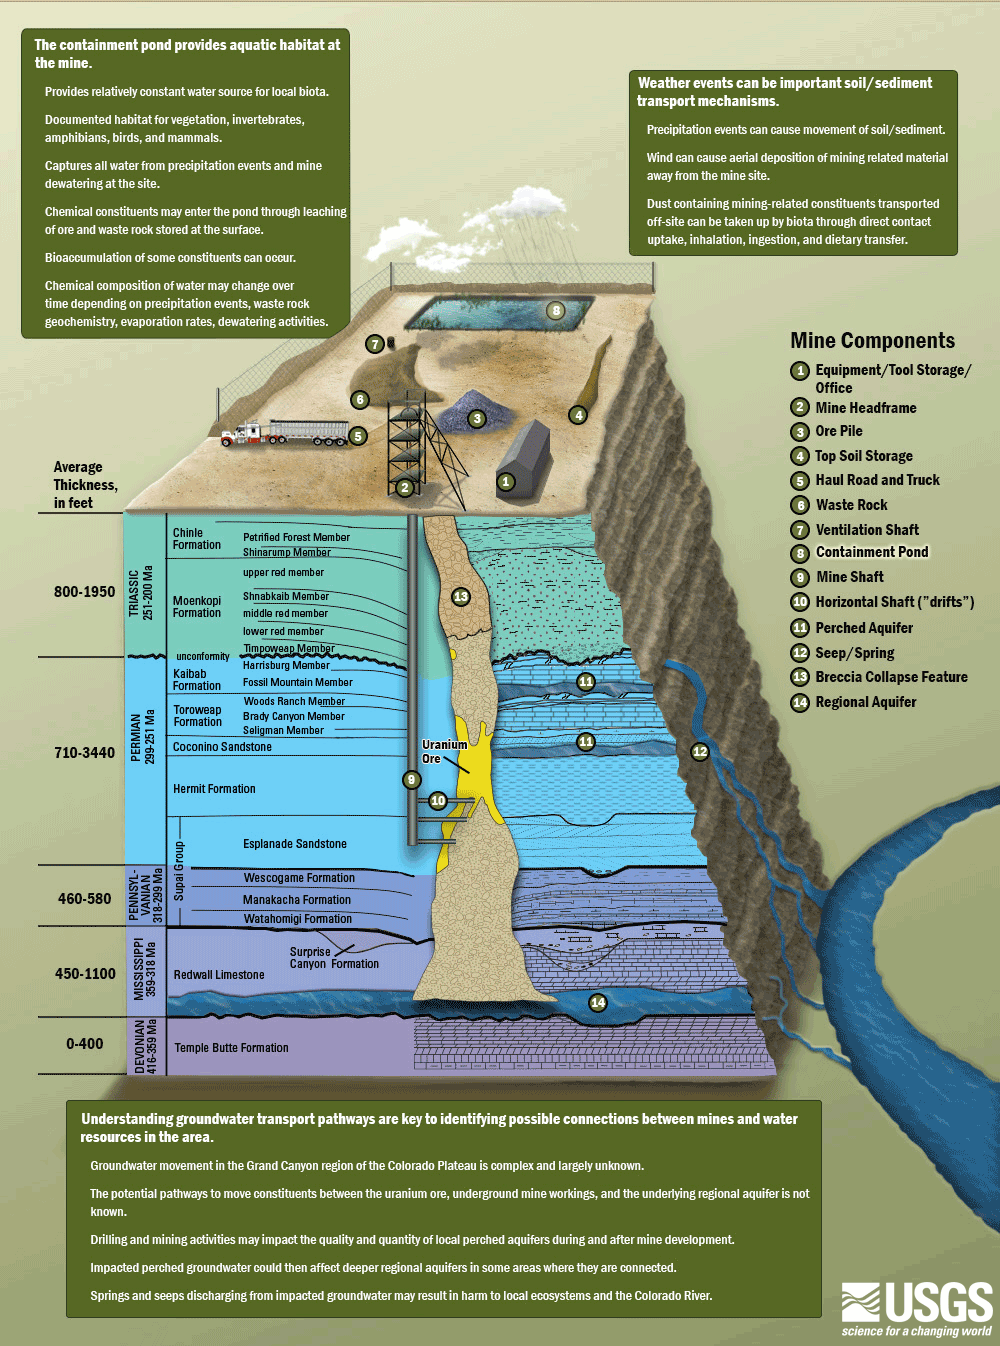 USGS Model of Canyon Mine